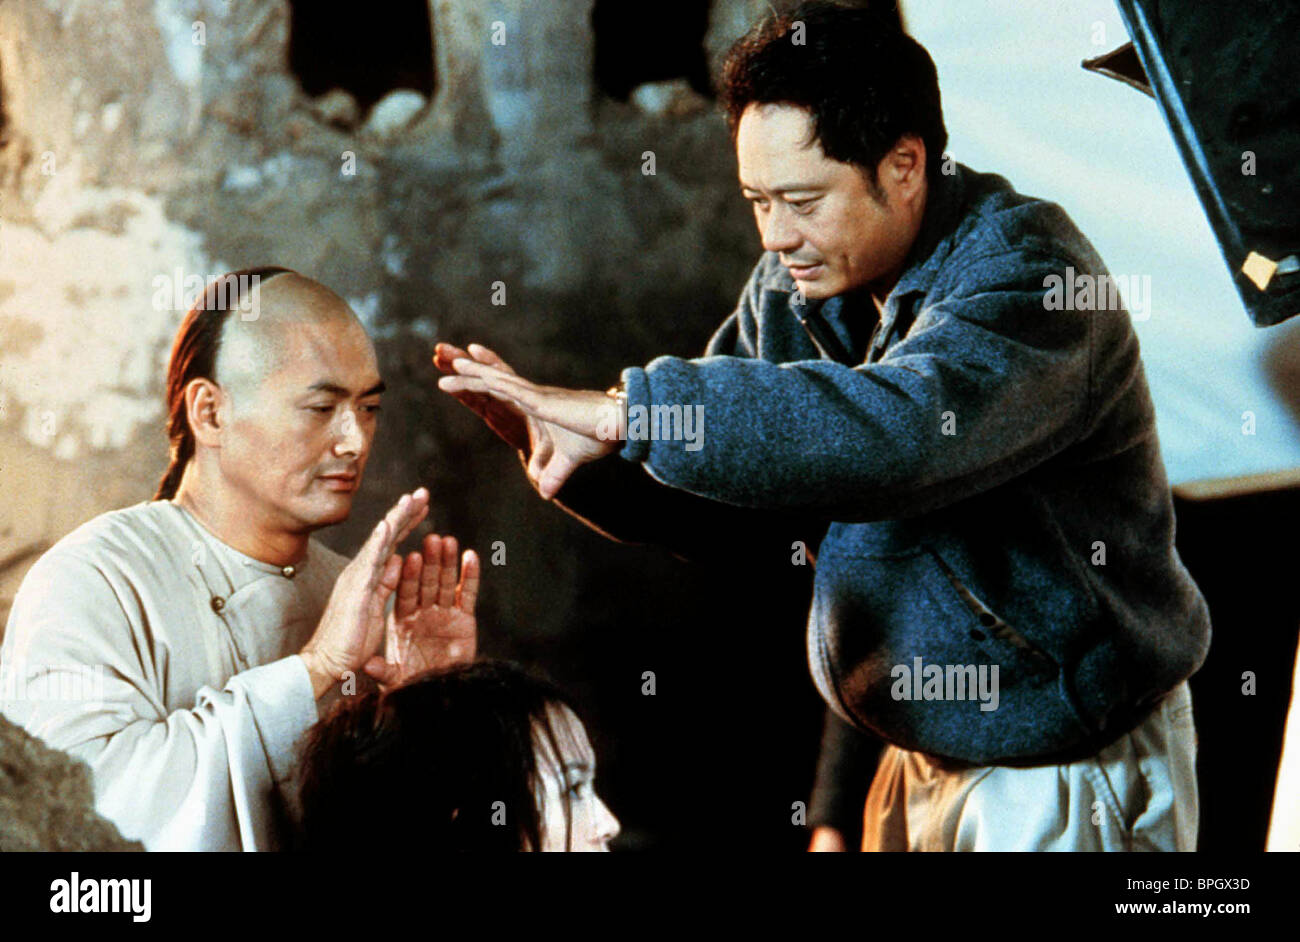 Chow Yun Fat Ang Lee Crouching Tiger Hidden Dragon 2000 Stock Photo Alamy